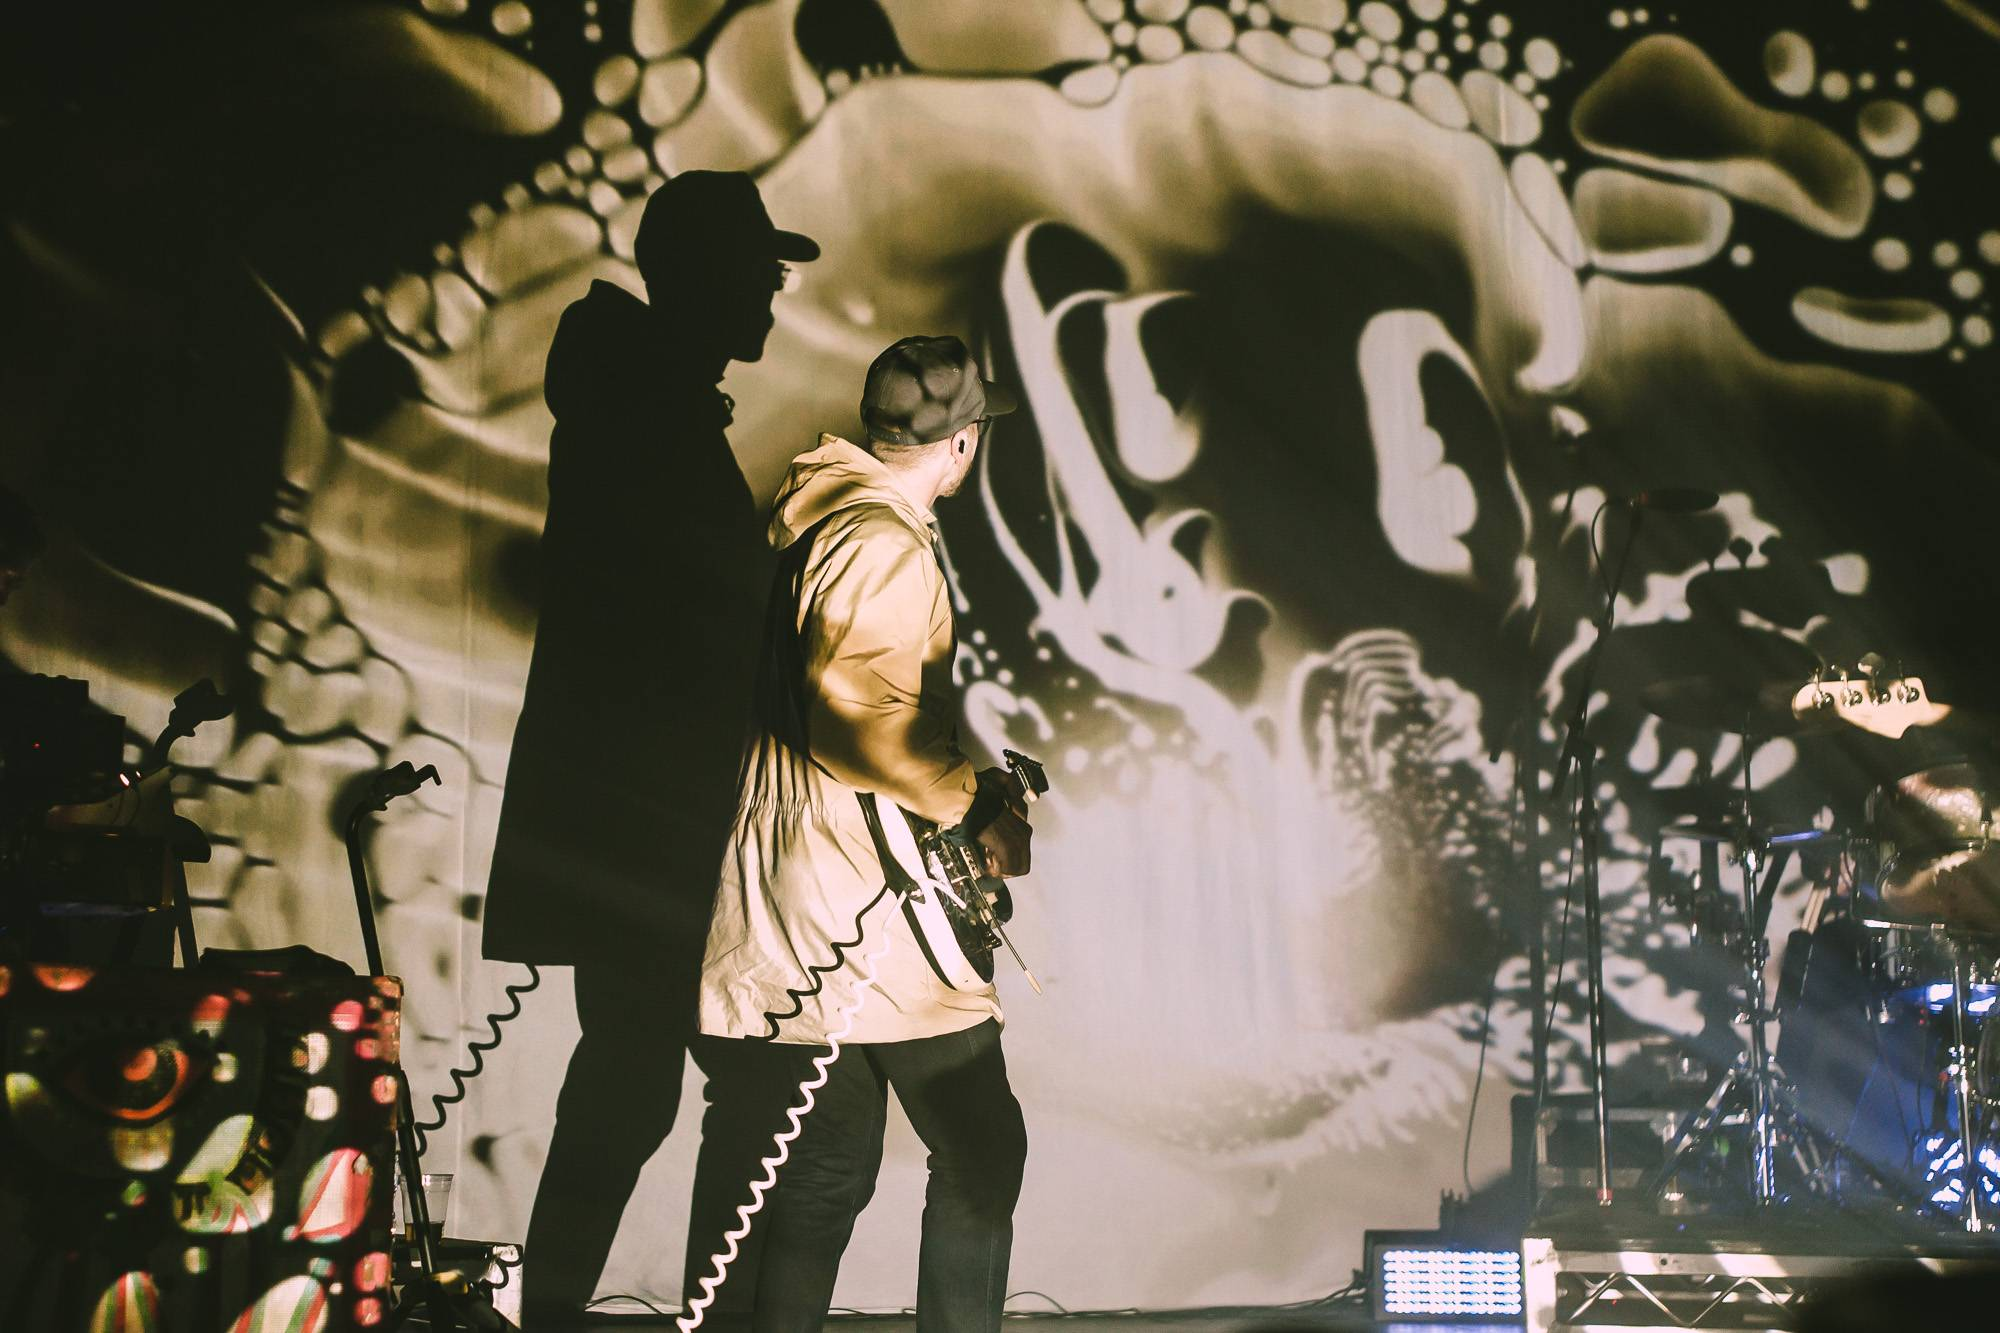 Portugal. The Man at the Vogue Theatre, Vancouver, Feb 02 2018. Kelli Anne photo.